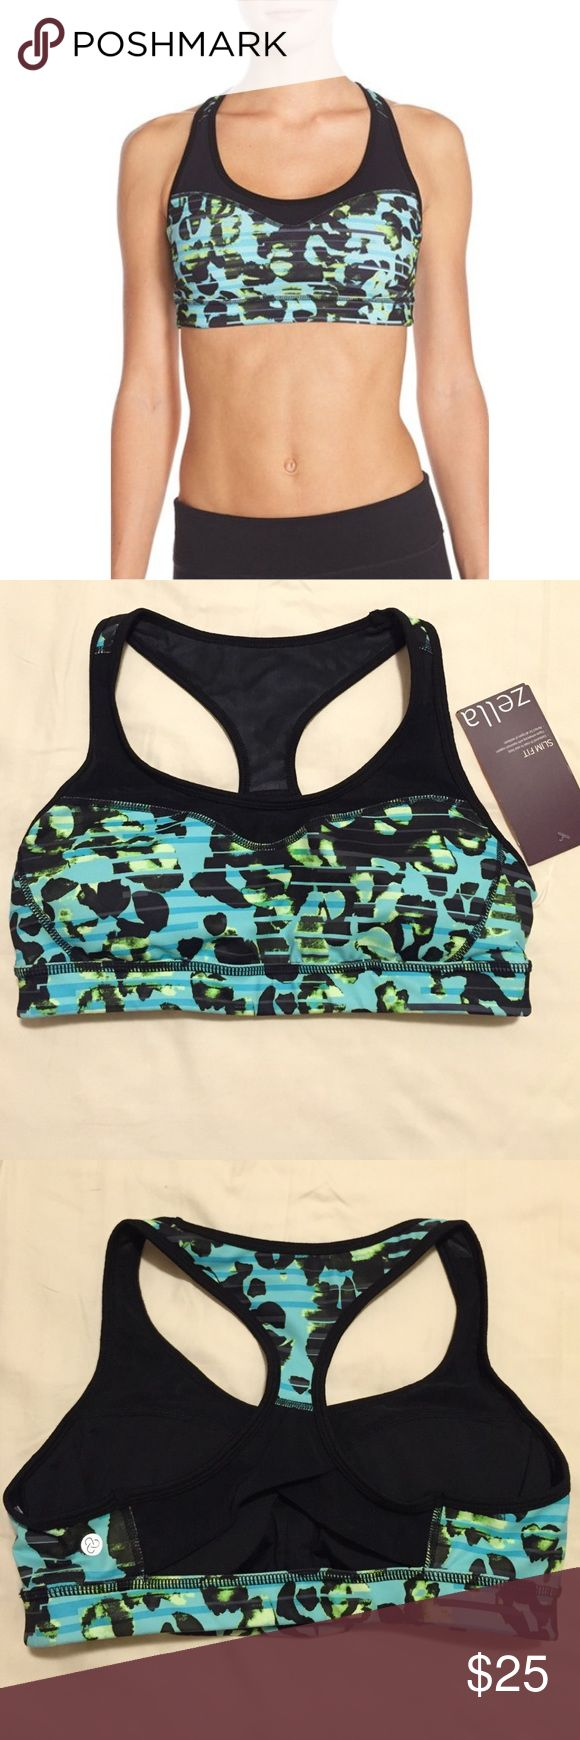 Zella Curve Sports Bra •Supportive, printed sports bra combining breathable mesh and comfortable stretch knit. The racerback is equipped to go the extra mile with a stylish ventilating cutout.   •NWT- Tag does not include price •Pattern- Green Tactical Jungle Stripe Print •Lined with removable pads •Polyester/Spandex •Machine Wash Zella Intimates & Sleepwear Bras